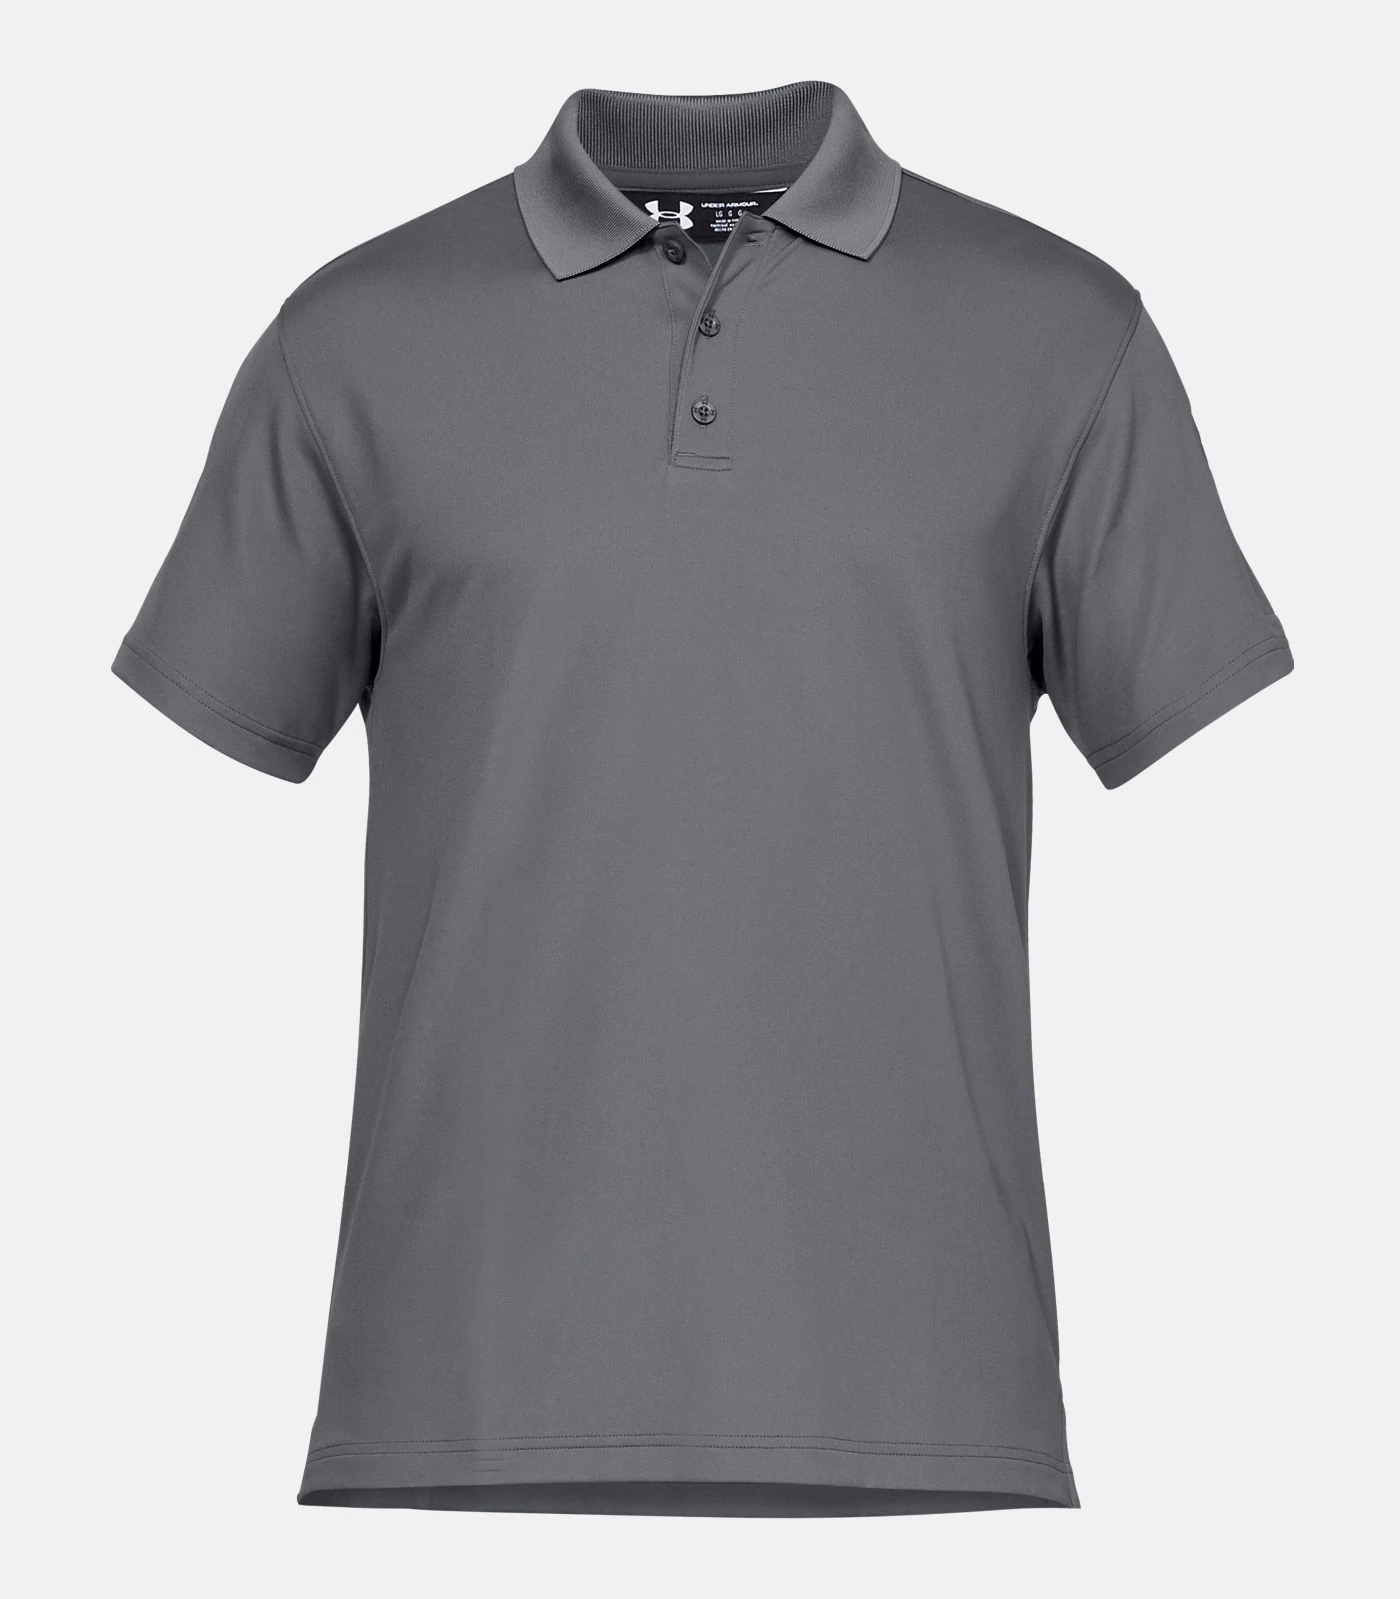 MENS_POLO_TacPerformance-SS_UAR1279759040_05